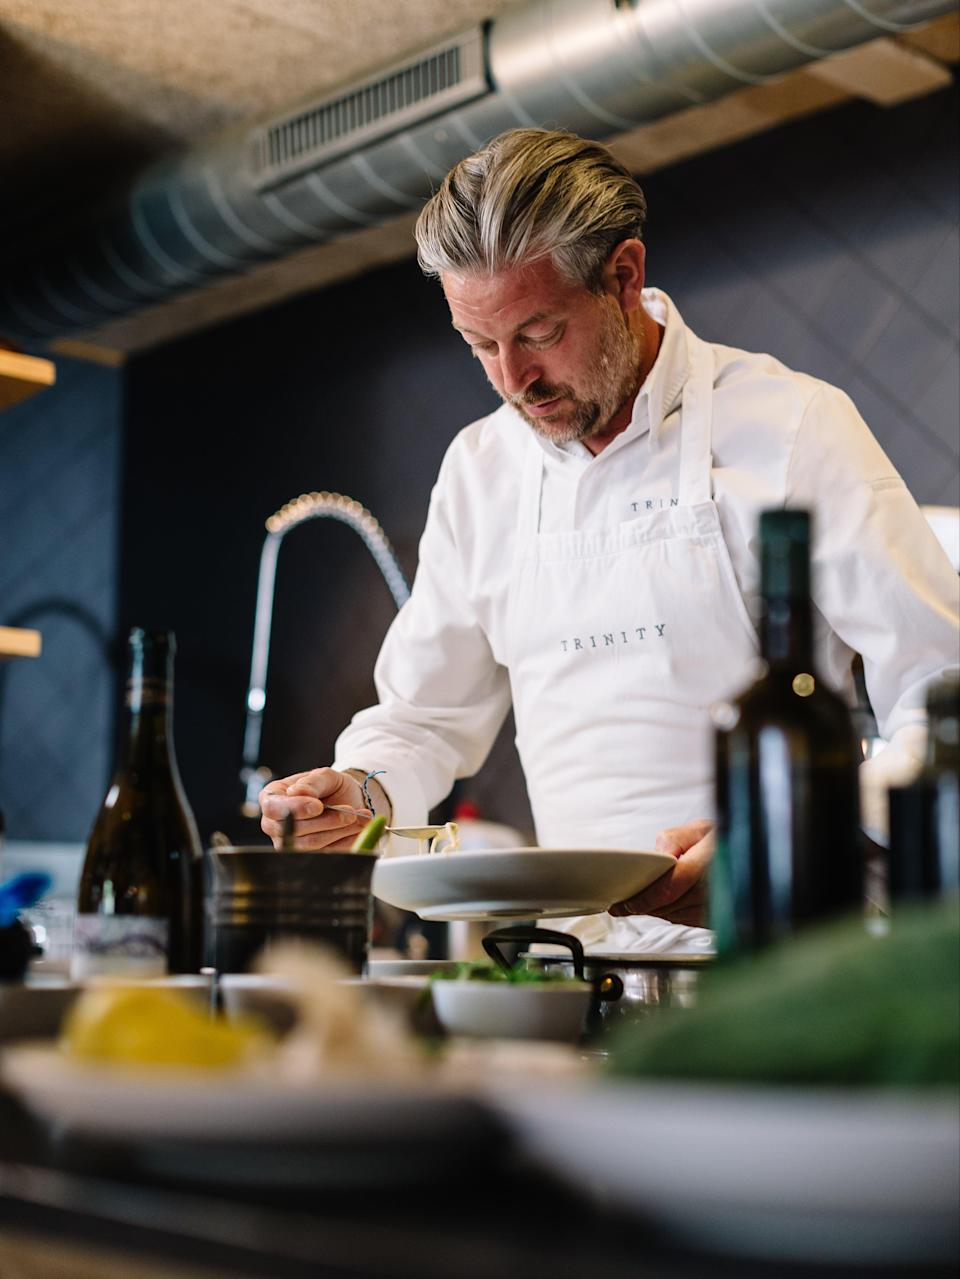 Byatt was named Imbibe's Restaurant Personality of the Year in 2017 for his impact on the London dining scene and commitment to nurturing young chefs' careers (Adam Byatt)